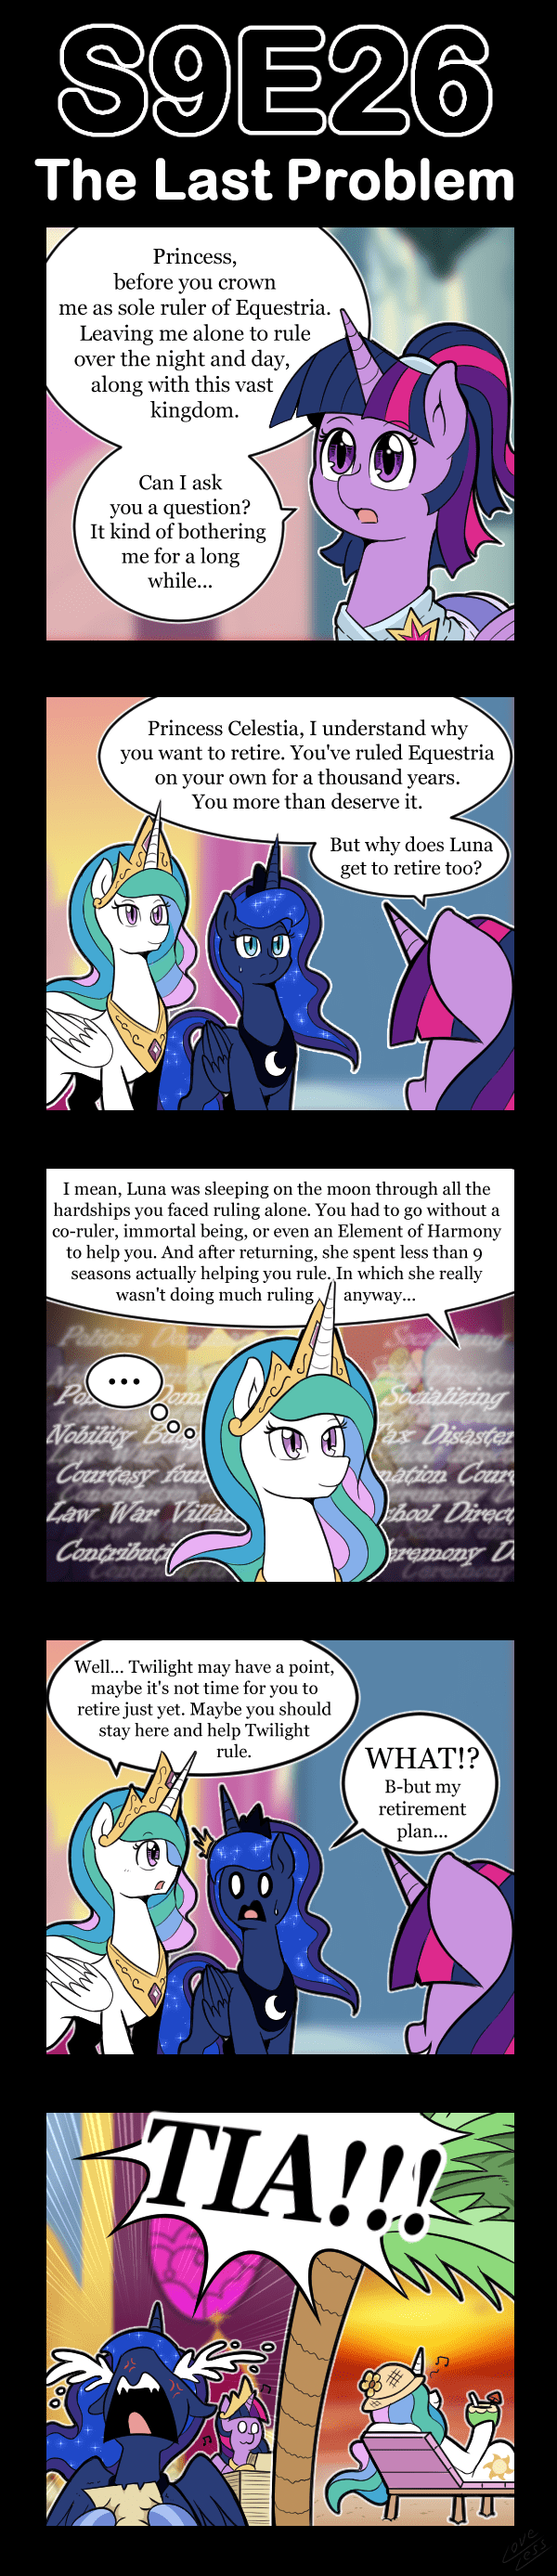 vavacung twilight sparkle princess luna princess celestia the last problem - 9449068288